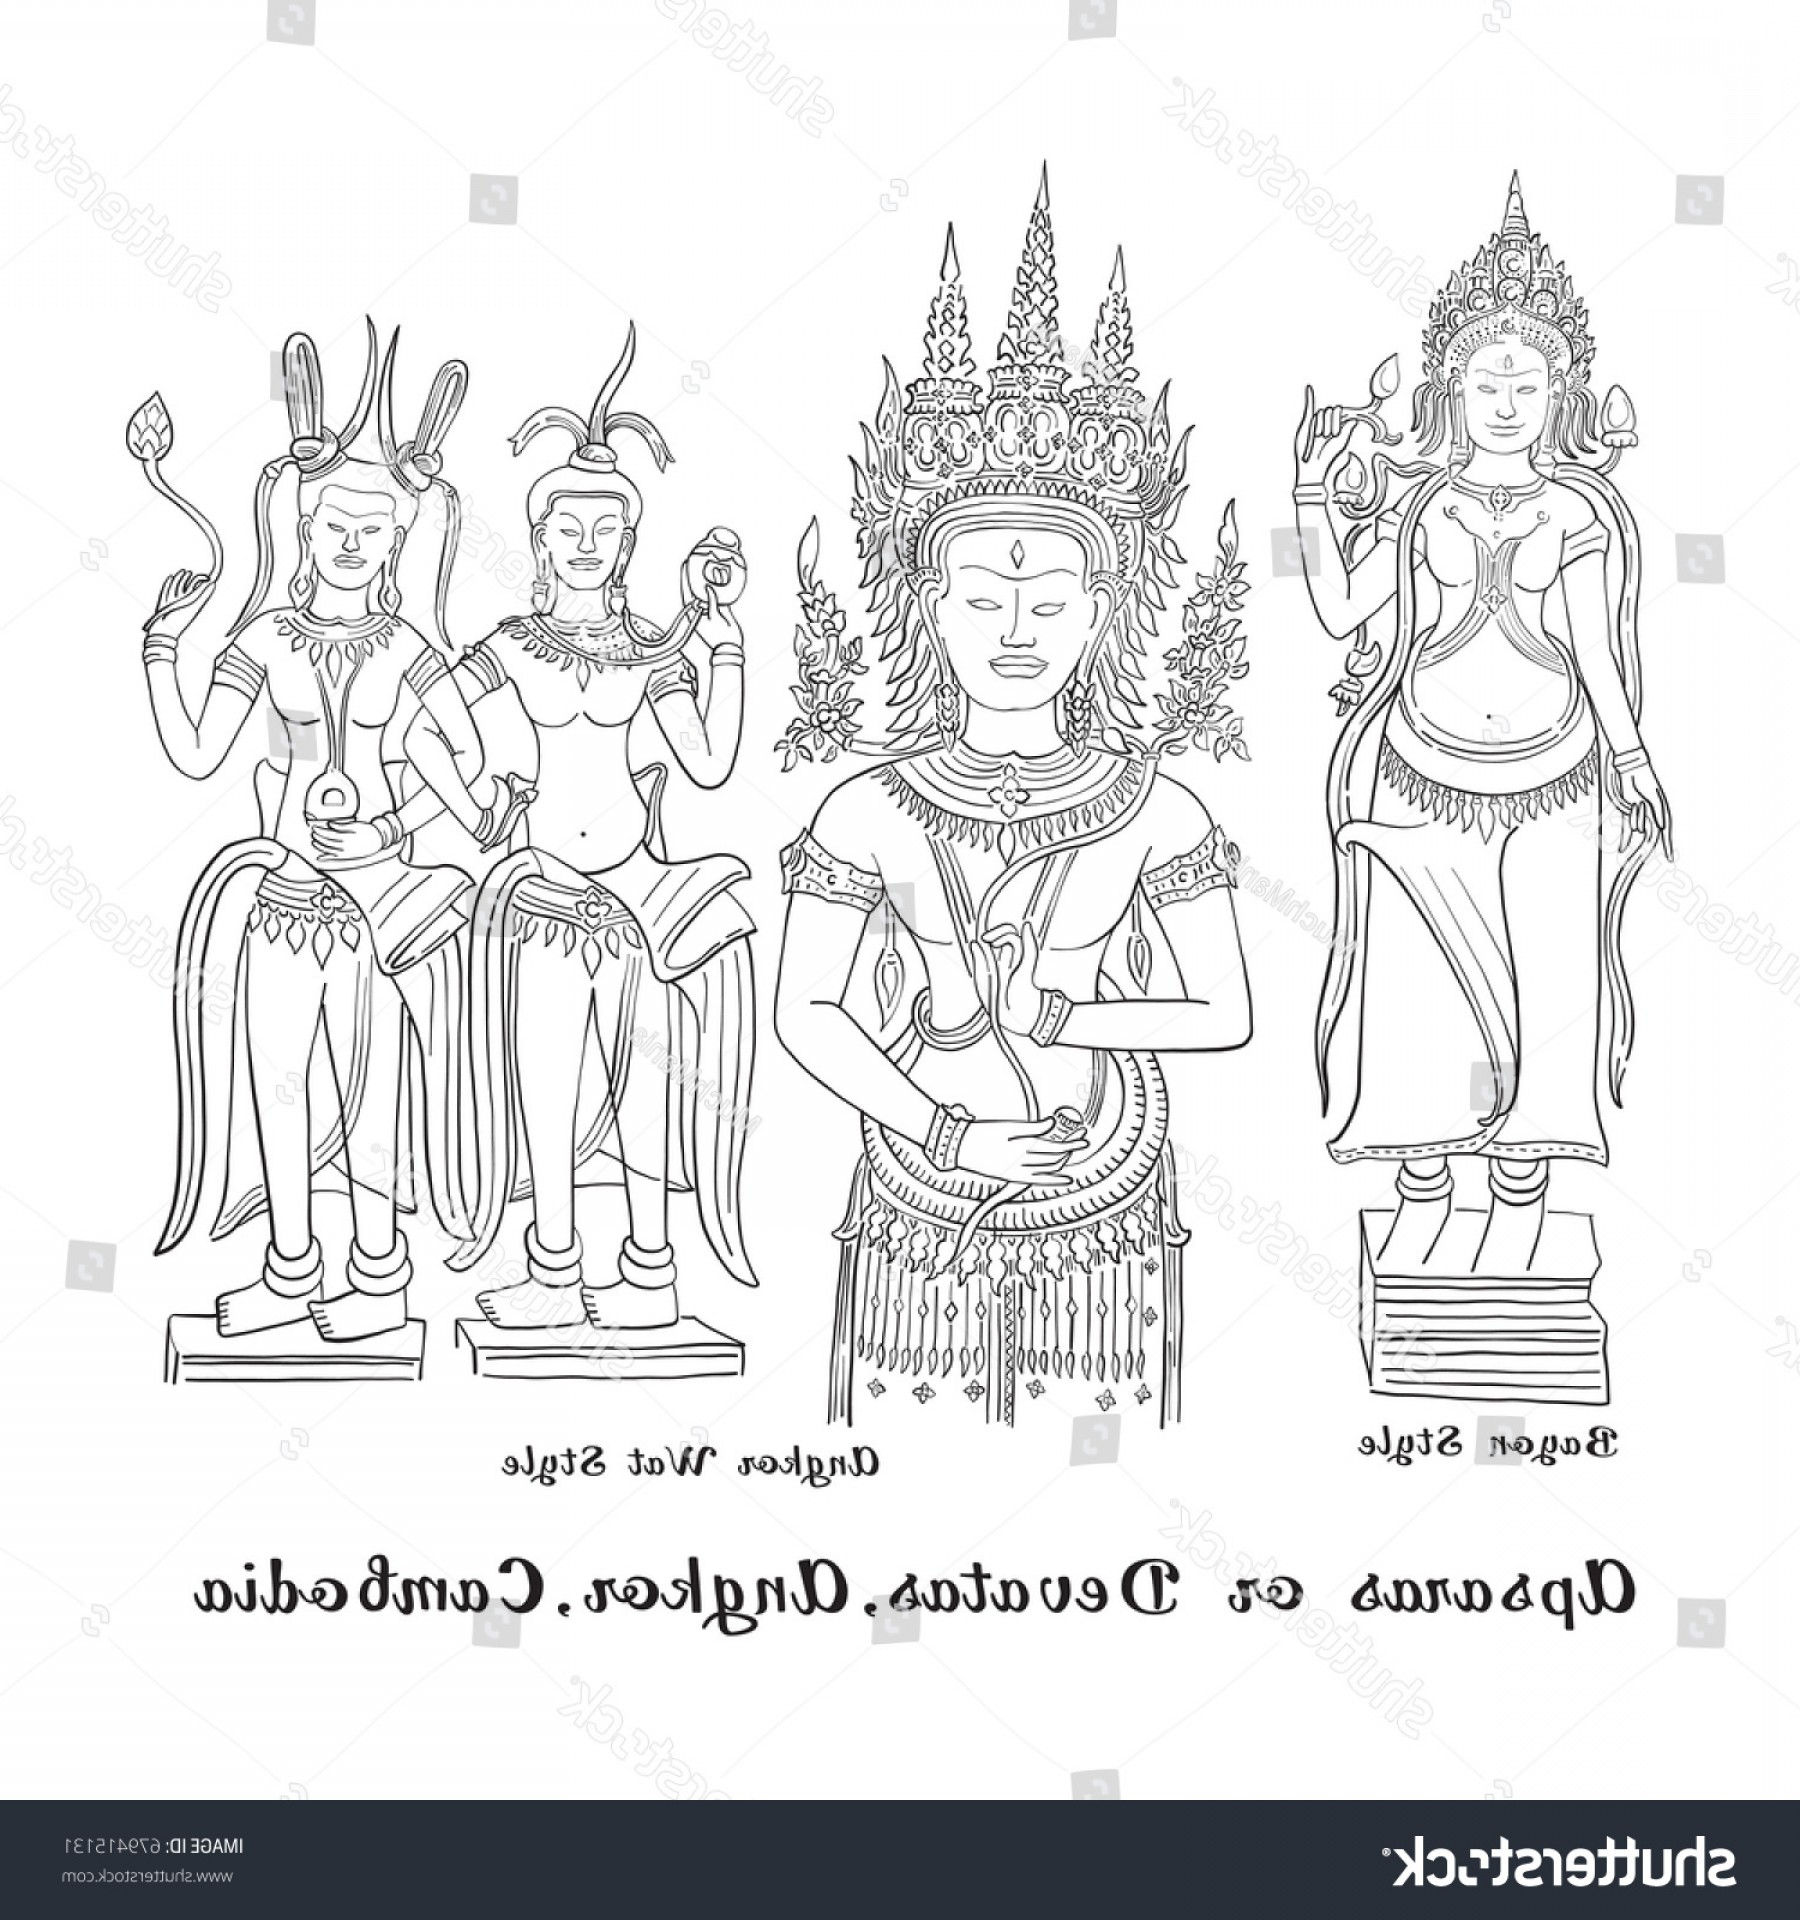 Vector Travel APS: Apsara Devata Angkor Cambodia Sketch Drawing